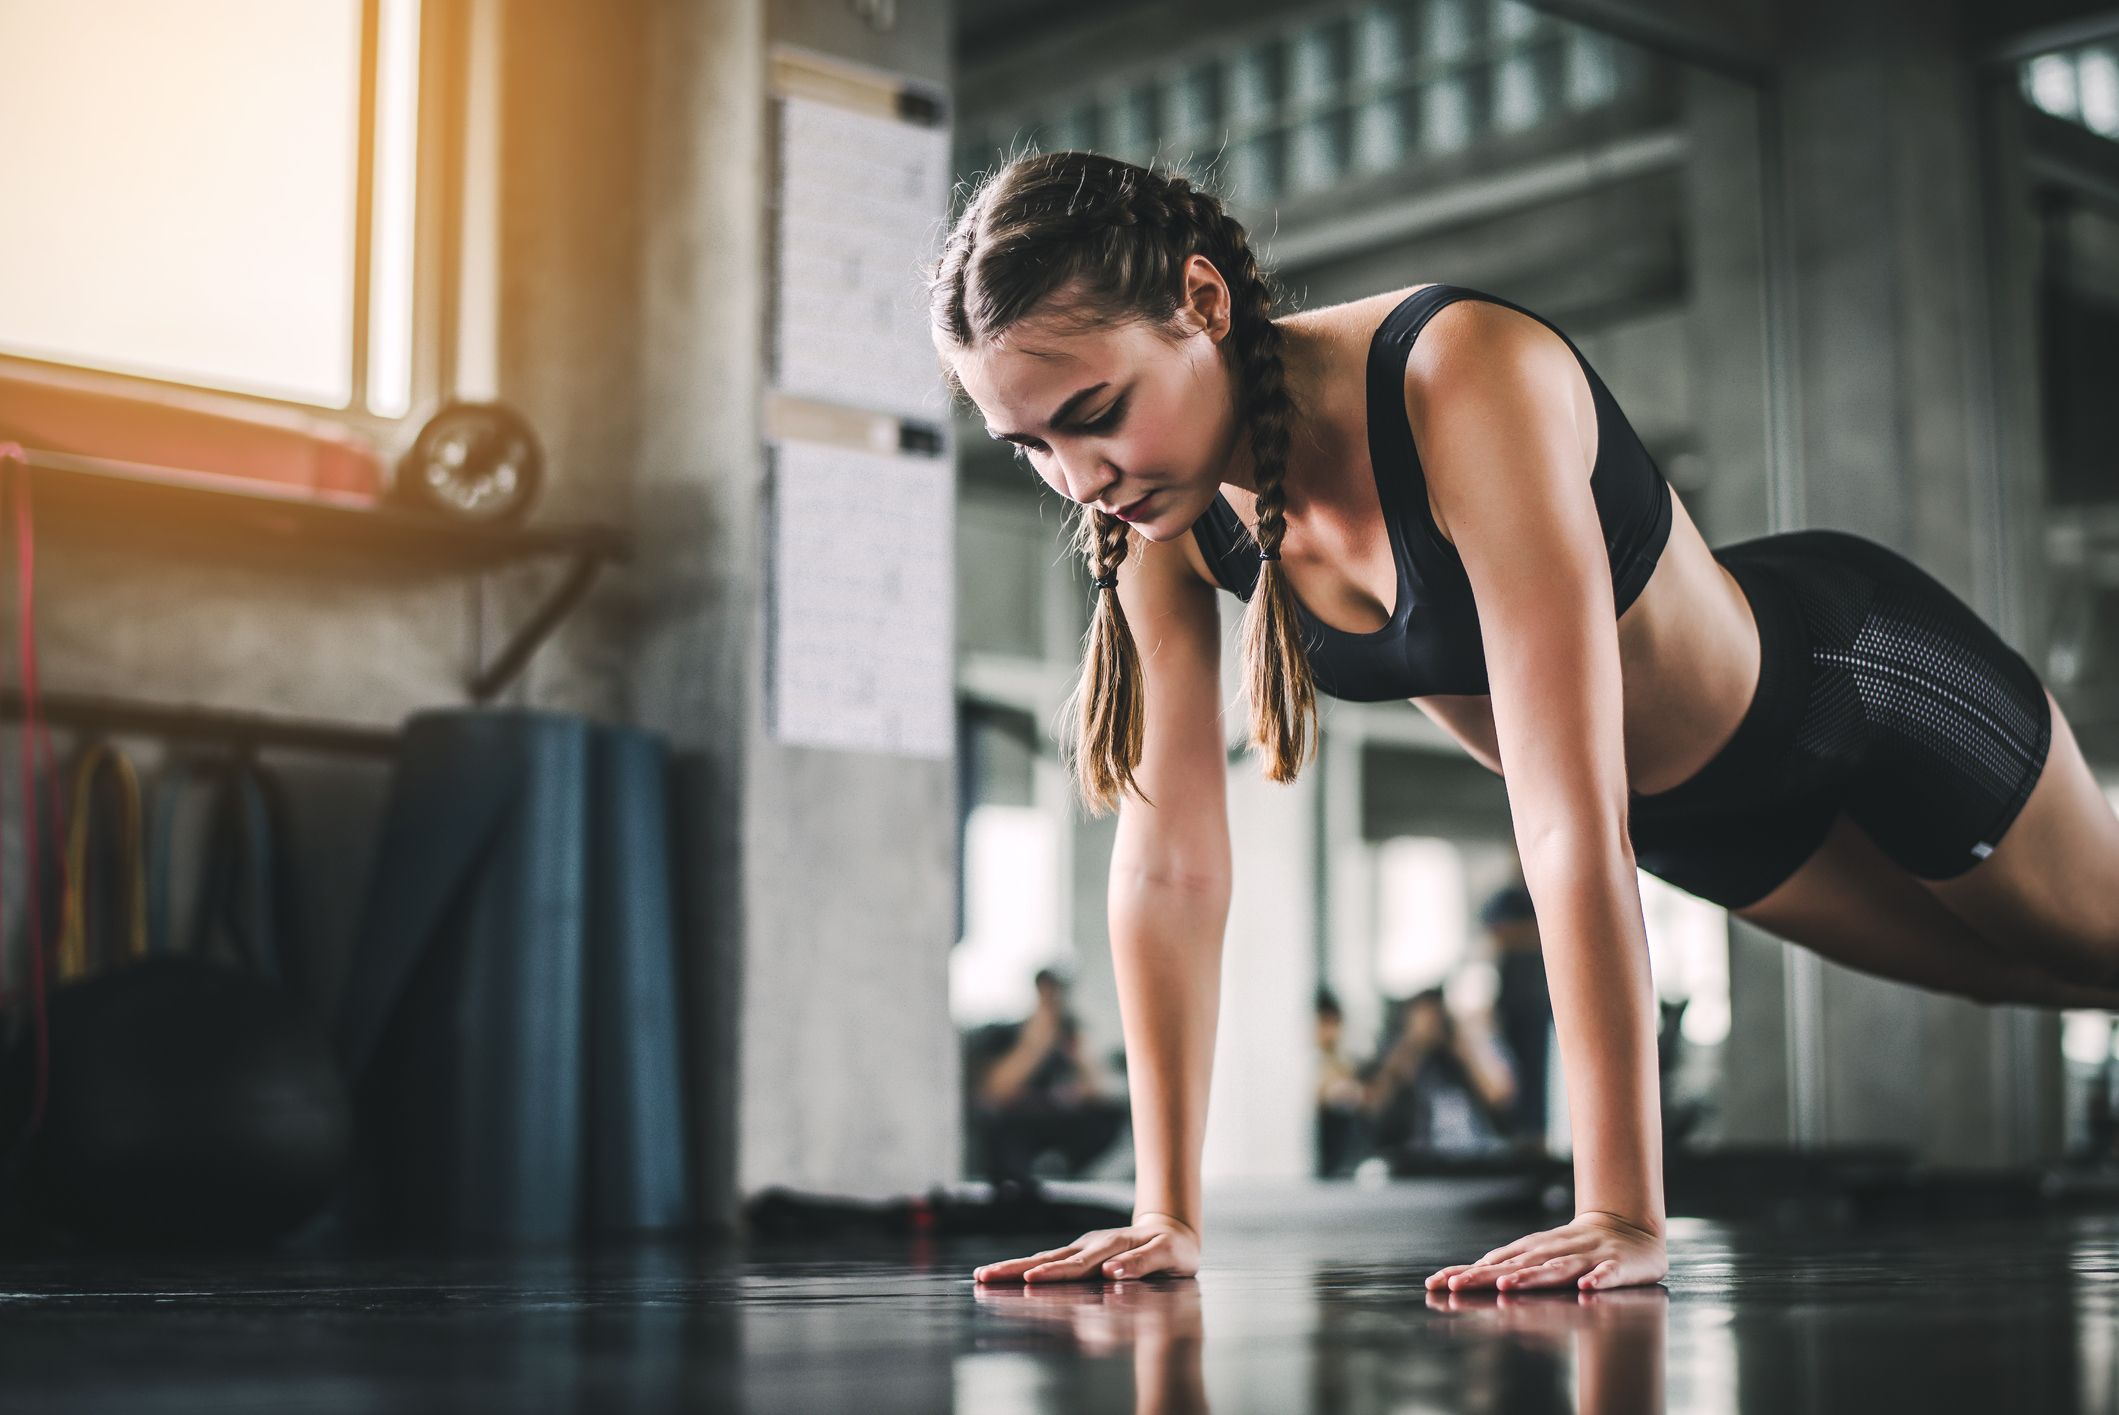 This 15-minute no-kit HIIT workout is a quick, full-body burner